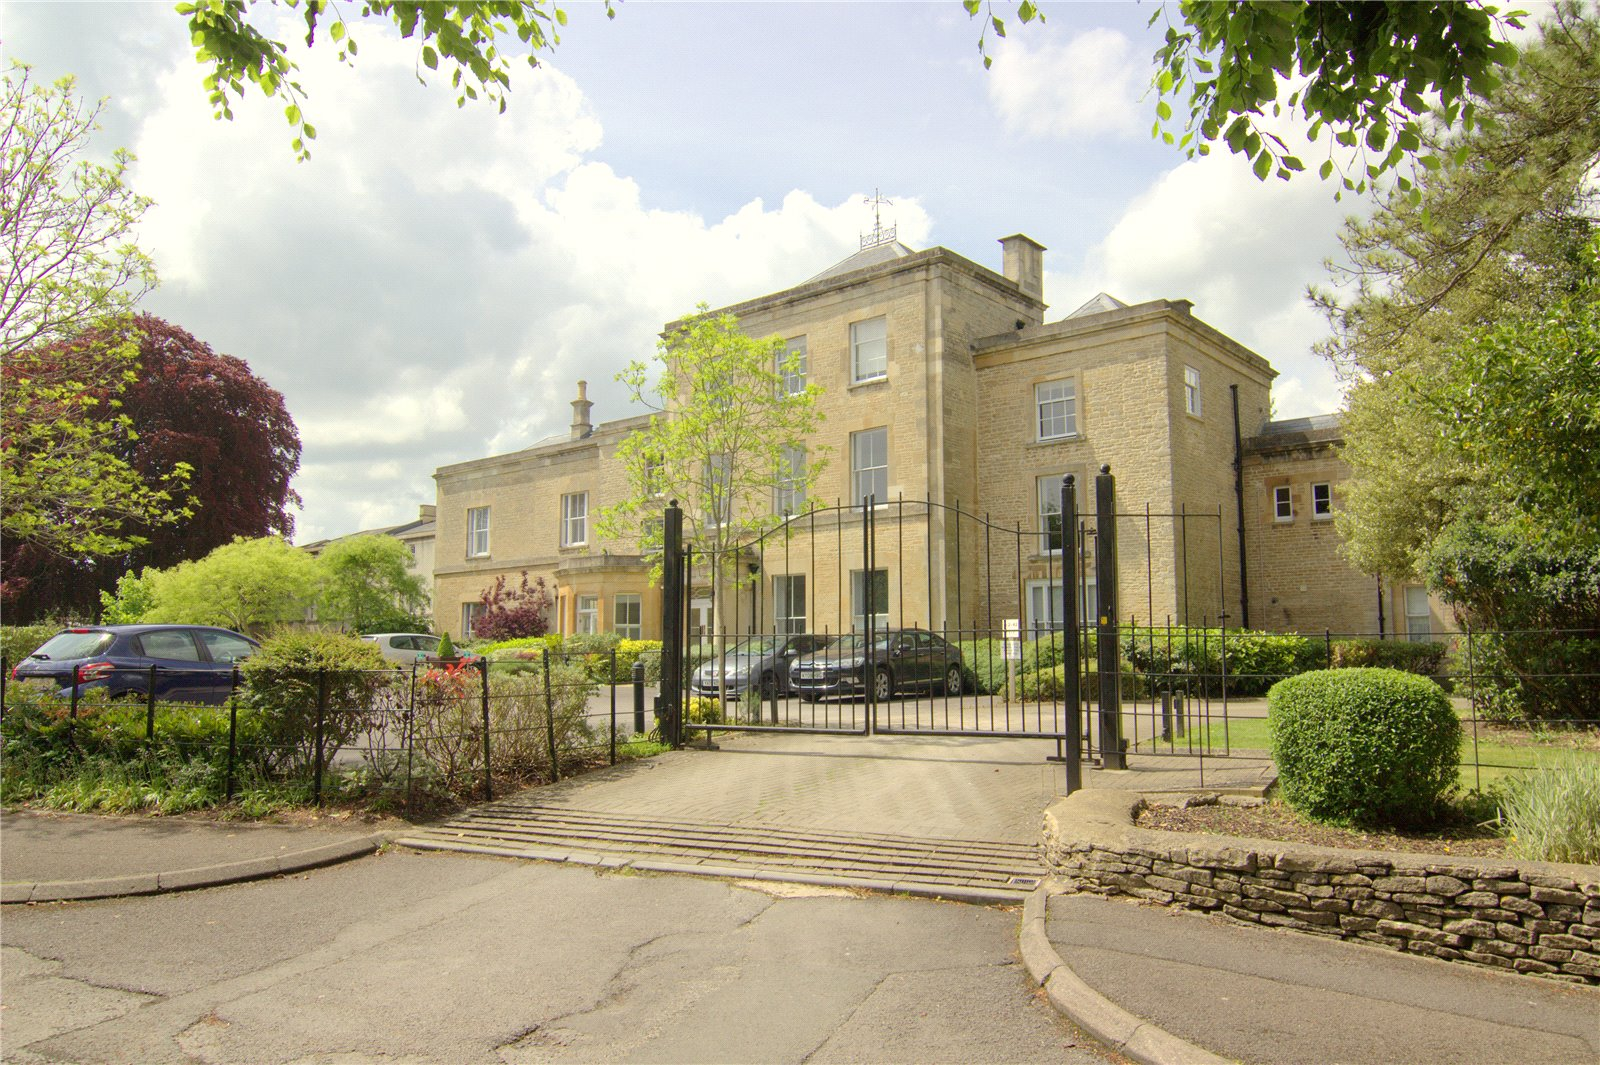 2 Bedrooms Flat for sale in Chesterton House Chesterton Lane Cirencester GL7